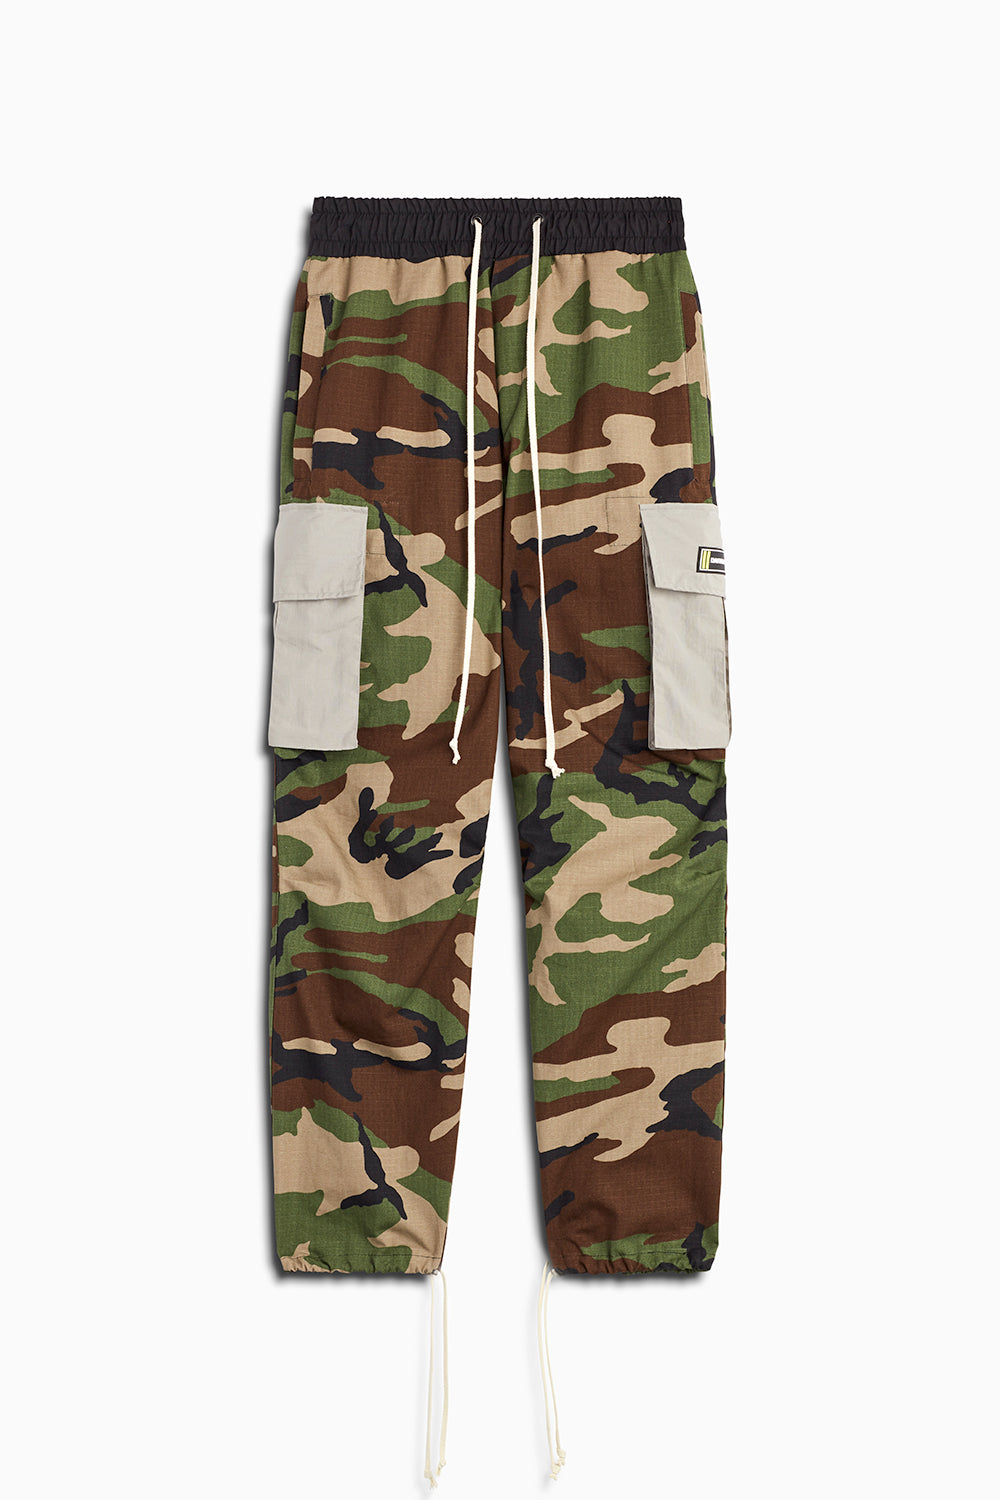 M93 cargo pants in camo/smog grey by daniel patrick